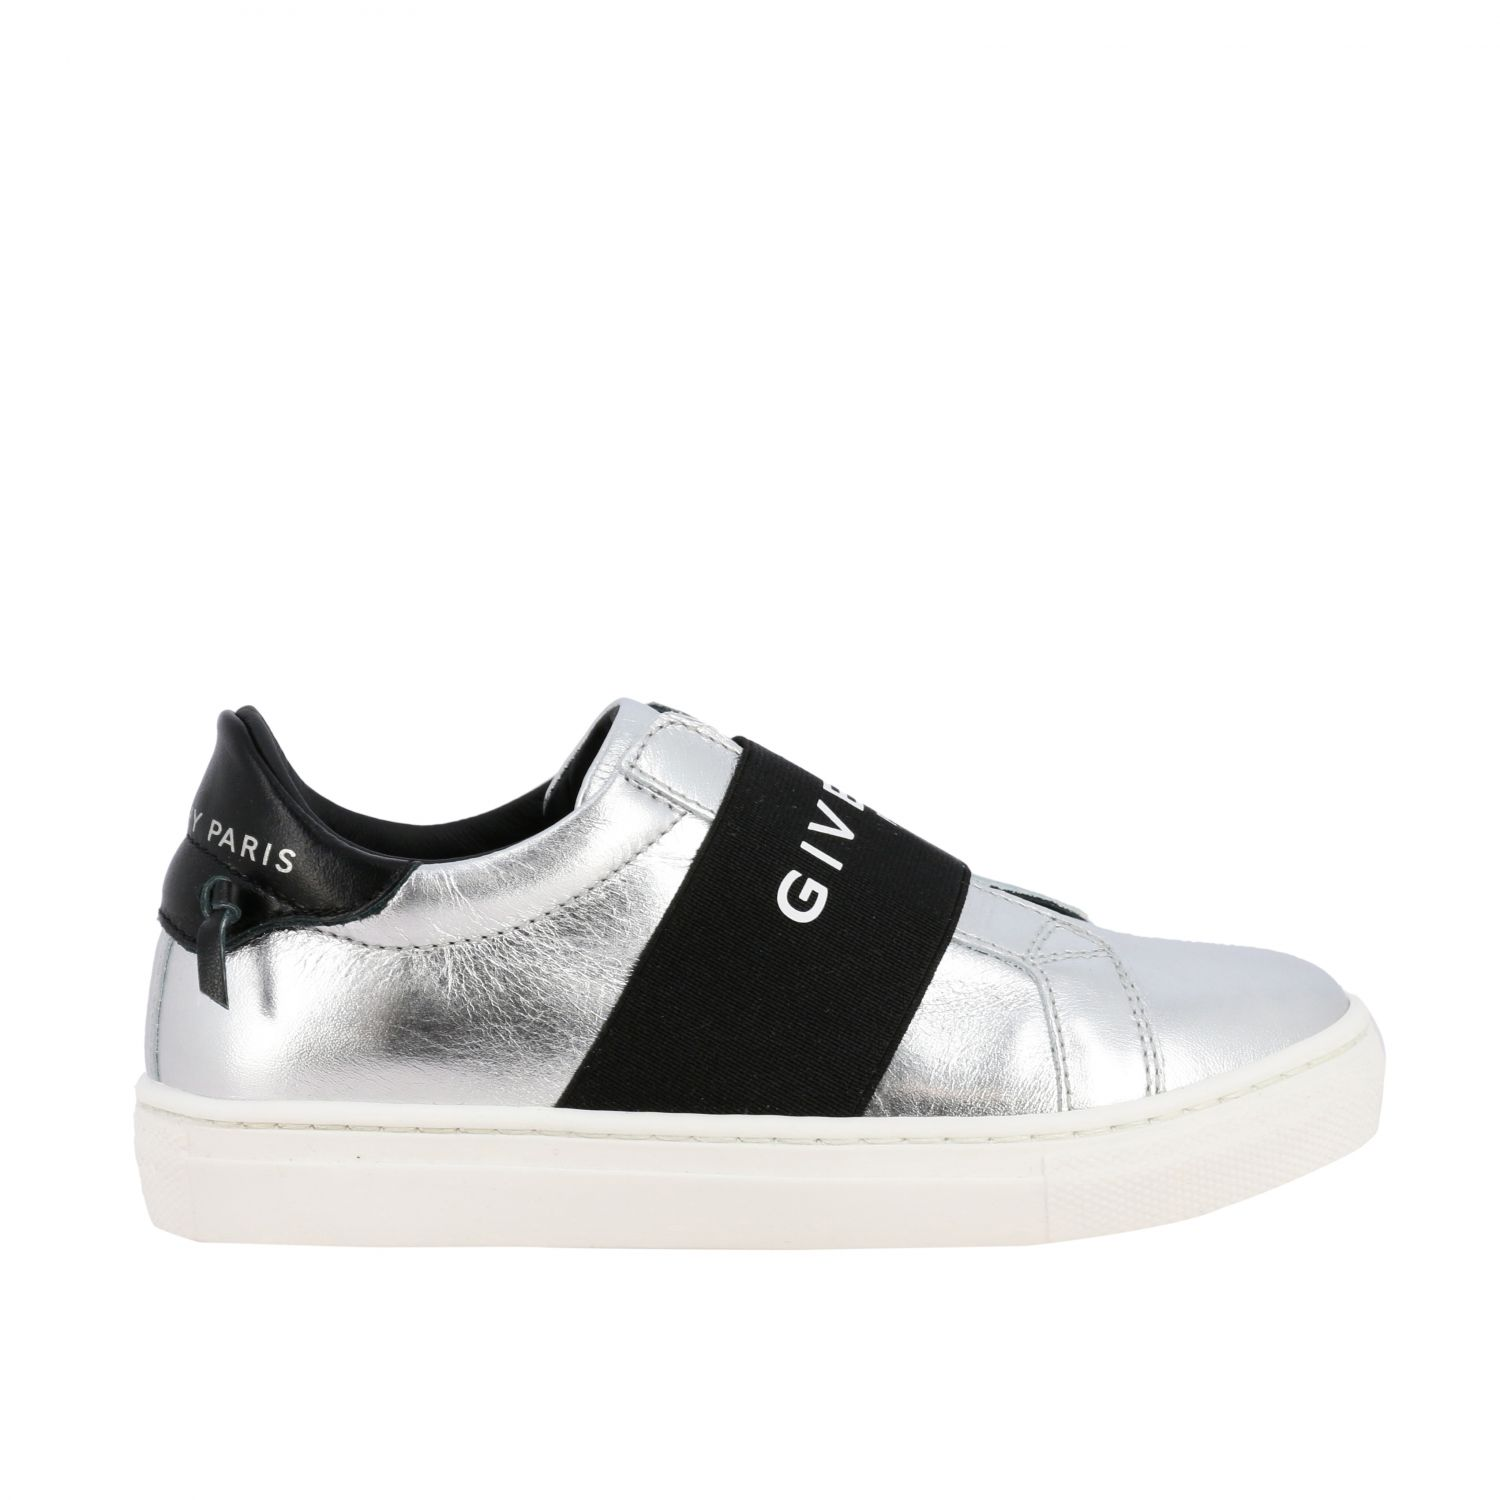 Shoes kids Givenchy   Shoes Givenchy